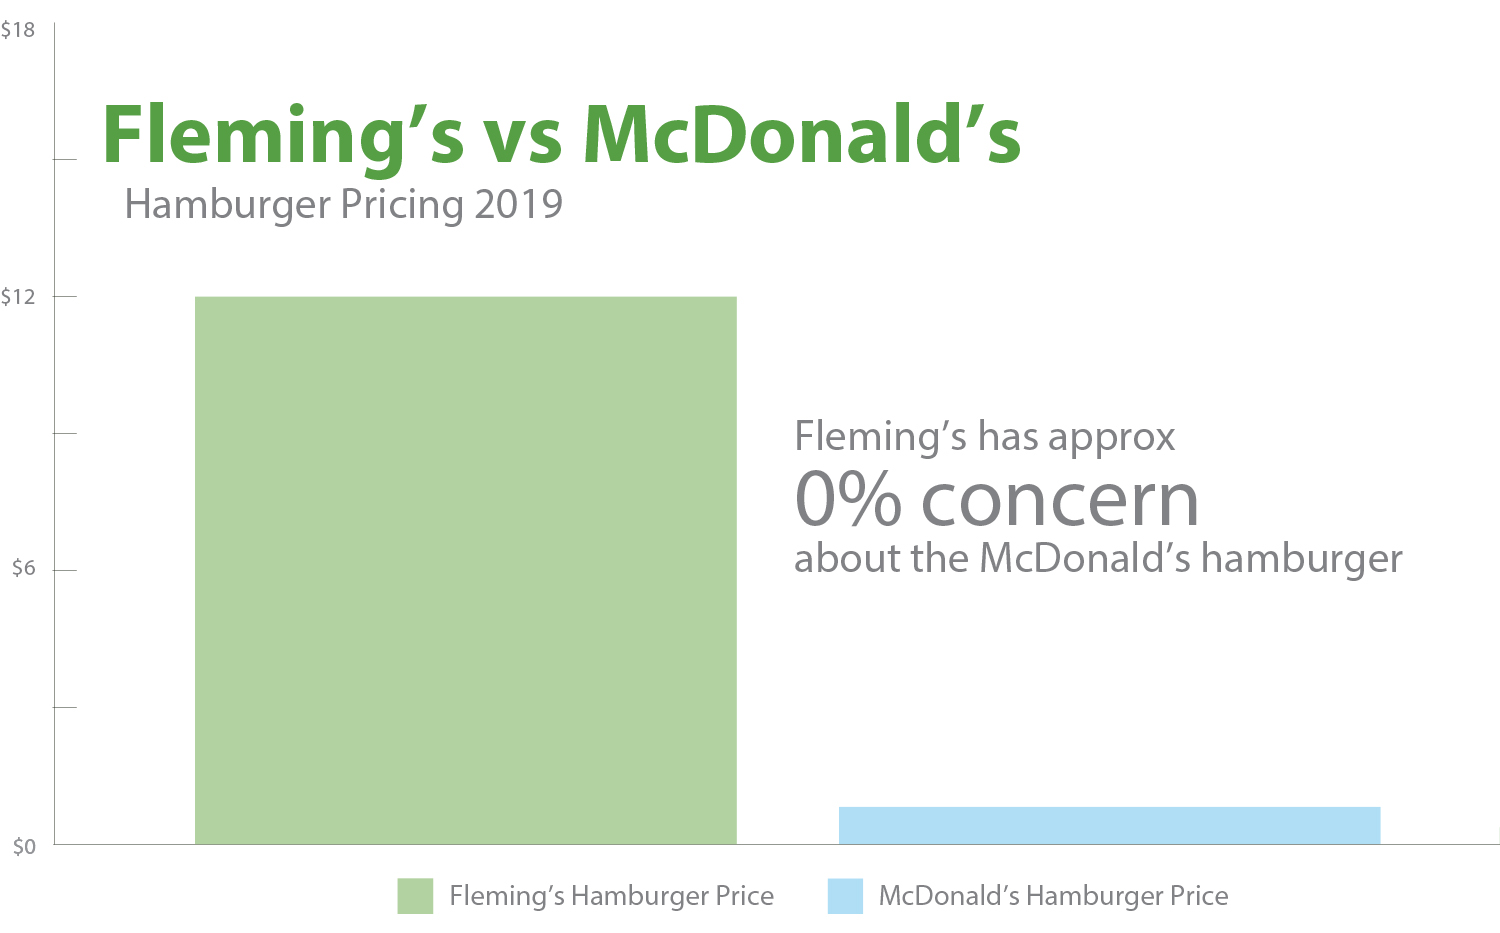 Flemings does not care about Mcdonalds